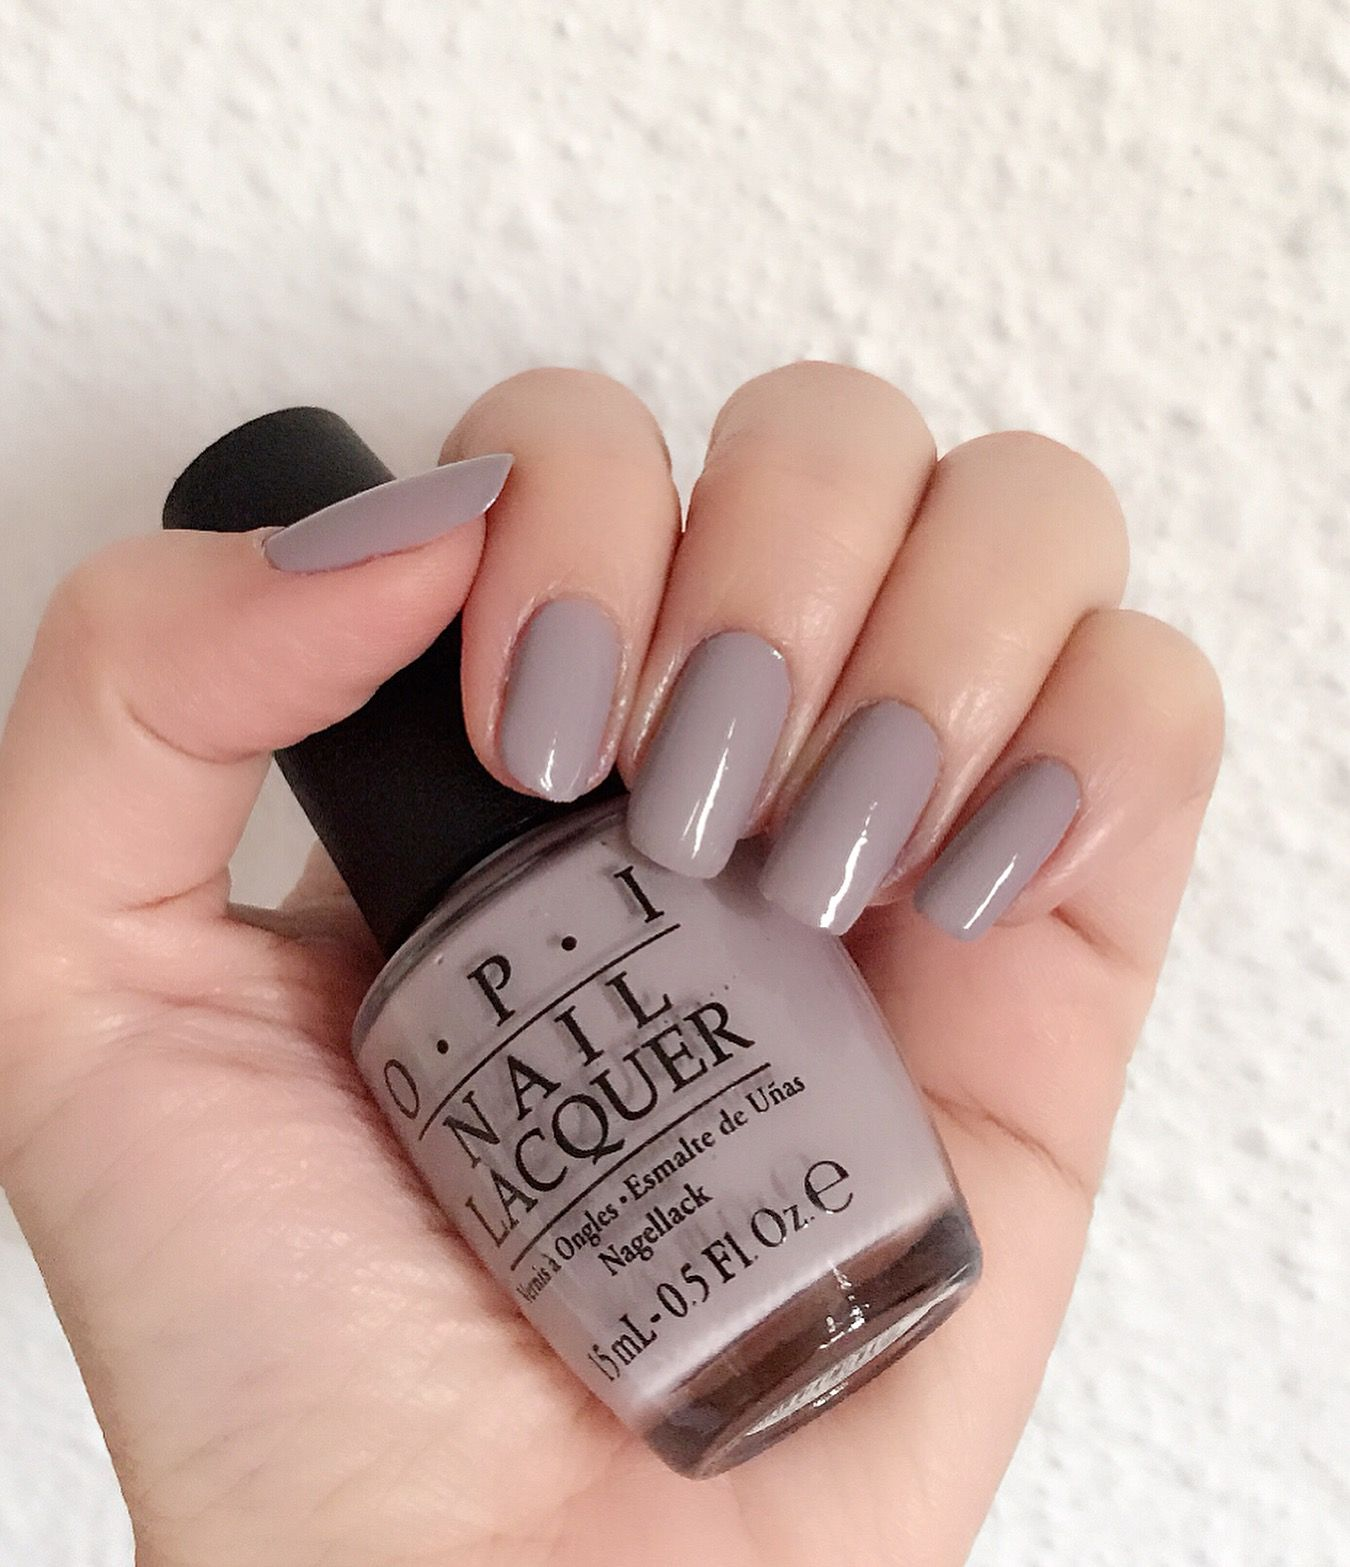 OPI Taupe-less beach | Manicure | Pinterest